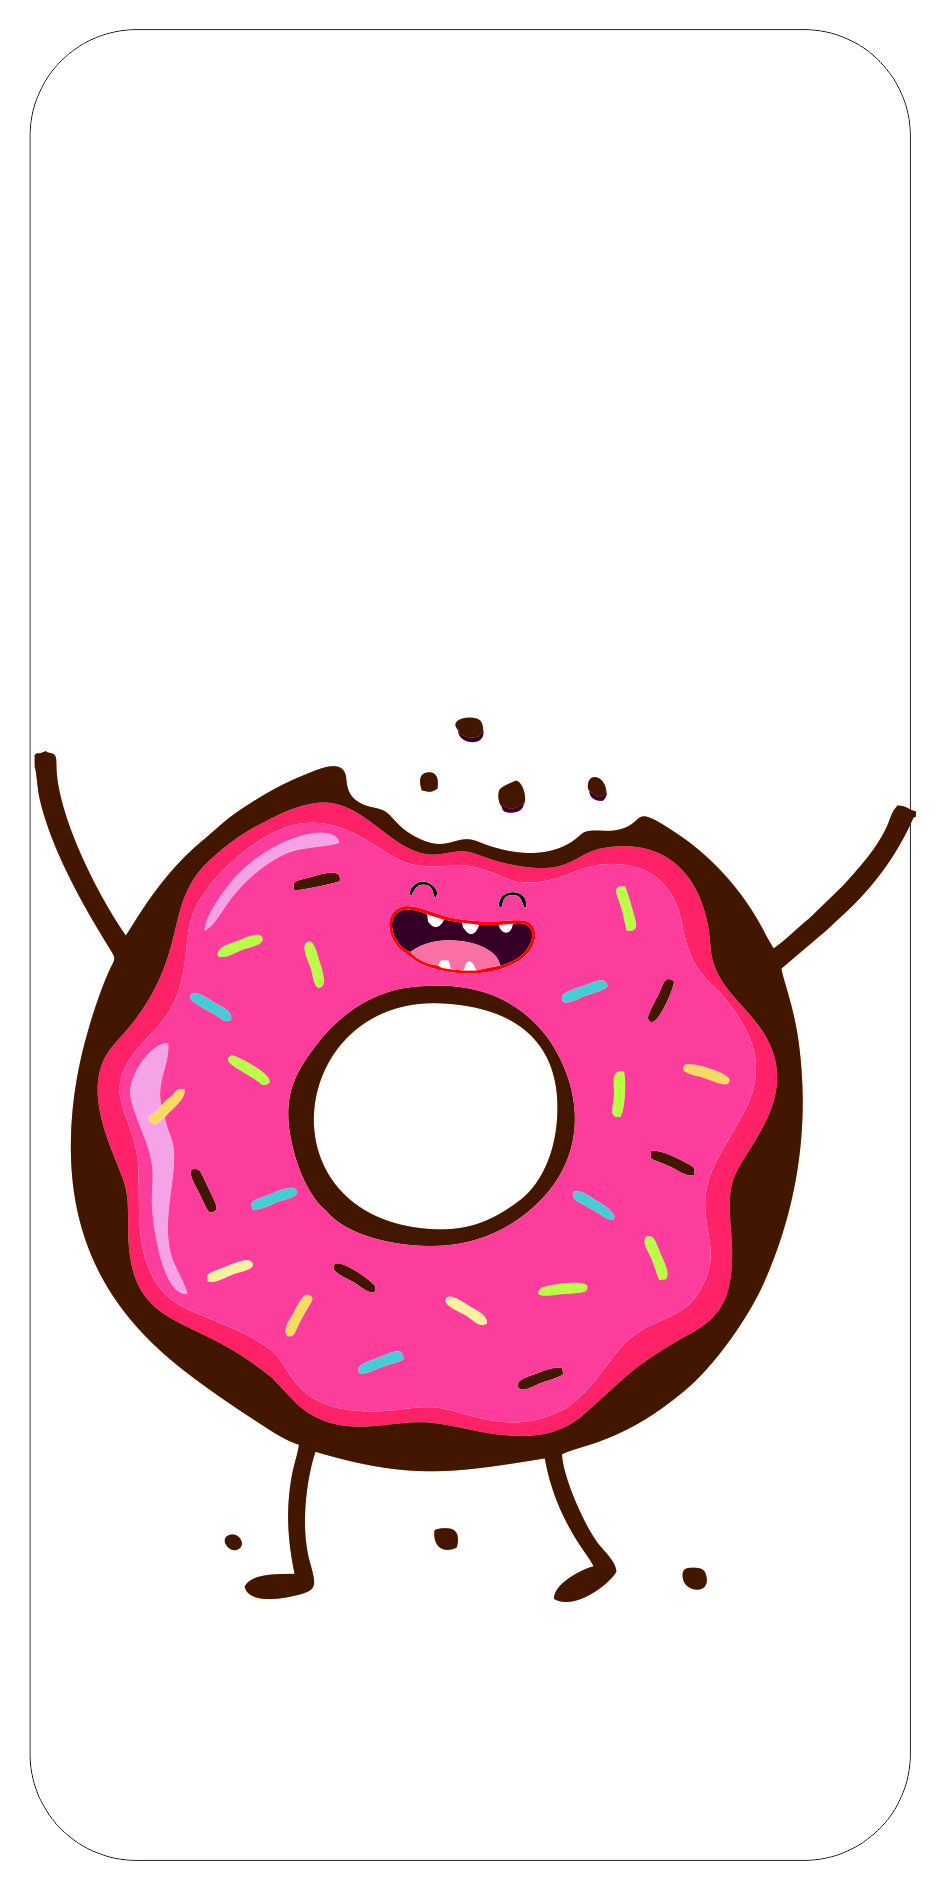 Donuts 009